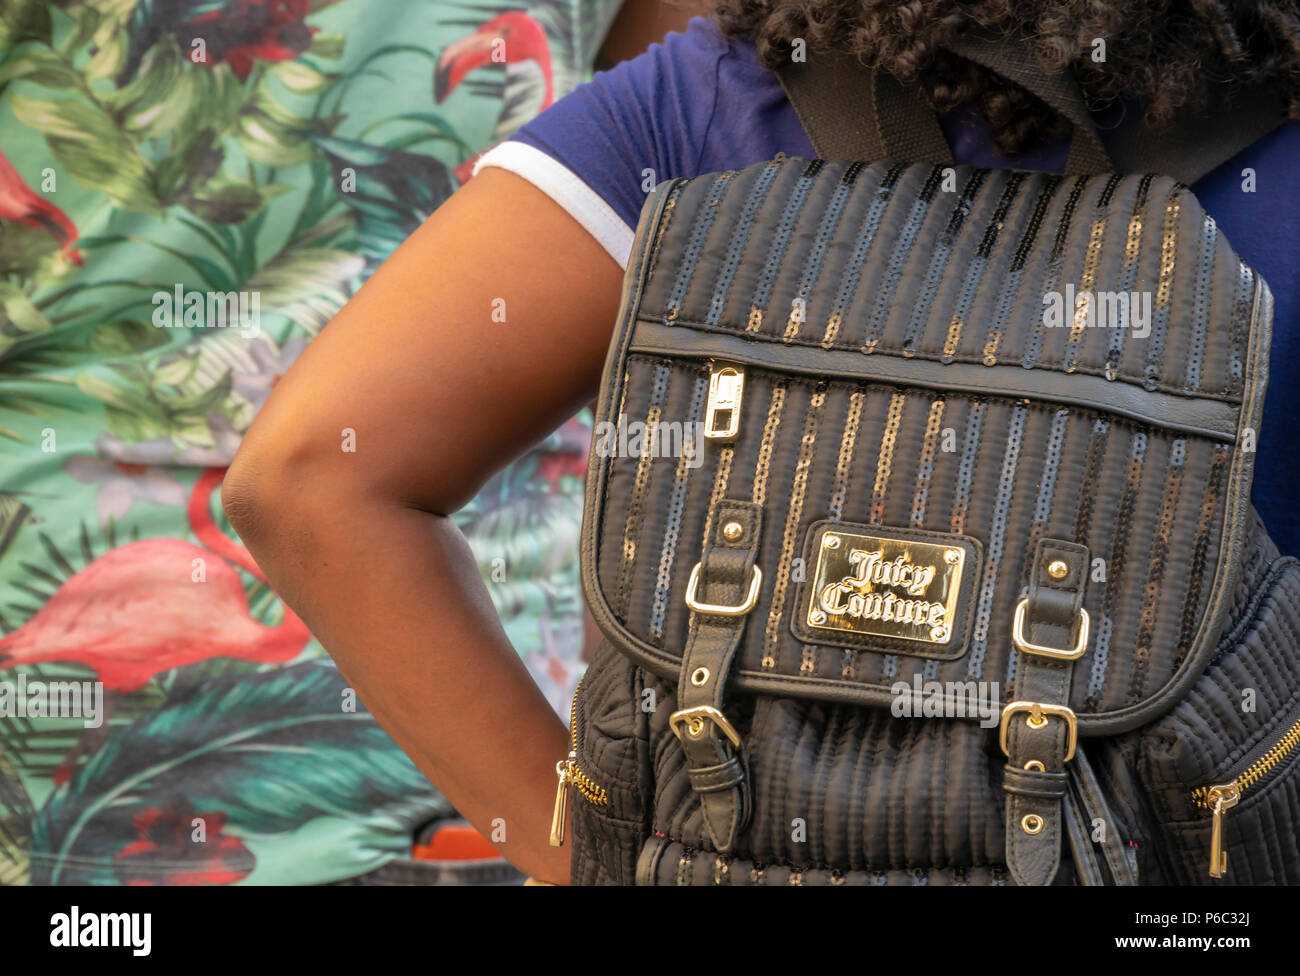 A teen with her Juicy Couture backpack on a street in New York on Saturday, June 16, 2018. Primarily associated with velour track suits, Juicy Couture was sold to Authentic Brands Group in 2013 by its previous owner Fifth & Pacific Inc. (Liz Claiborne) which proceeded to close all of its domestic stores. The brand is till available via the Kohl's department store chain. © Richard B. Levine) - Stock Image